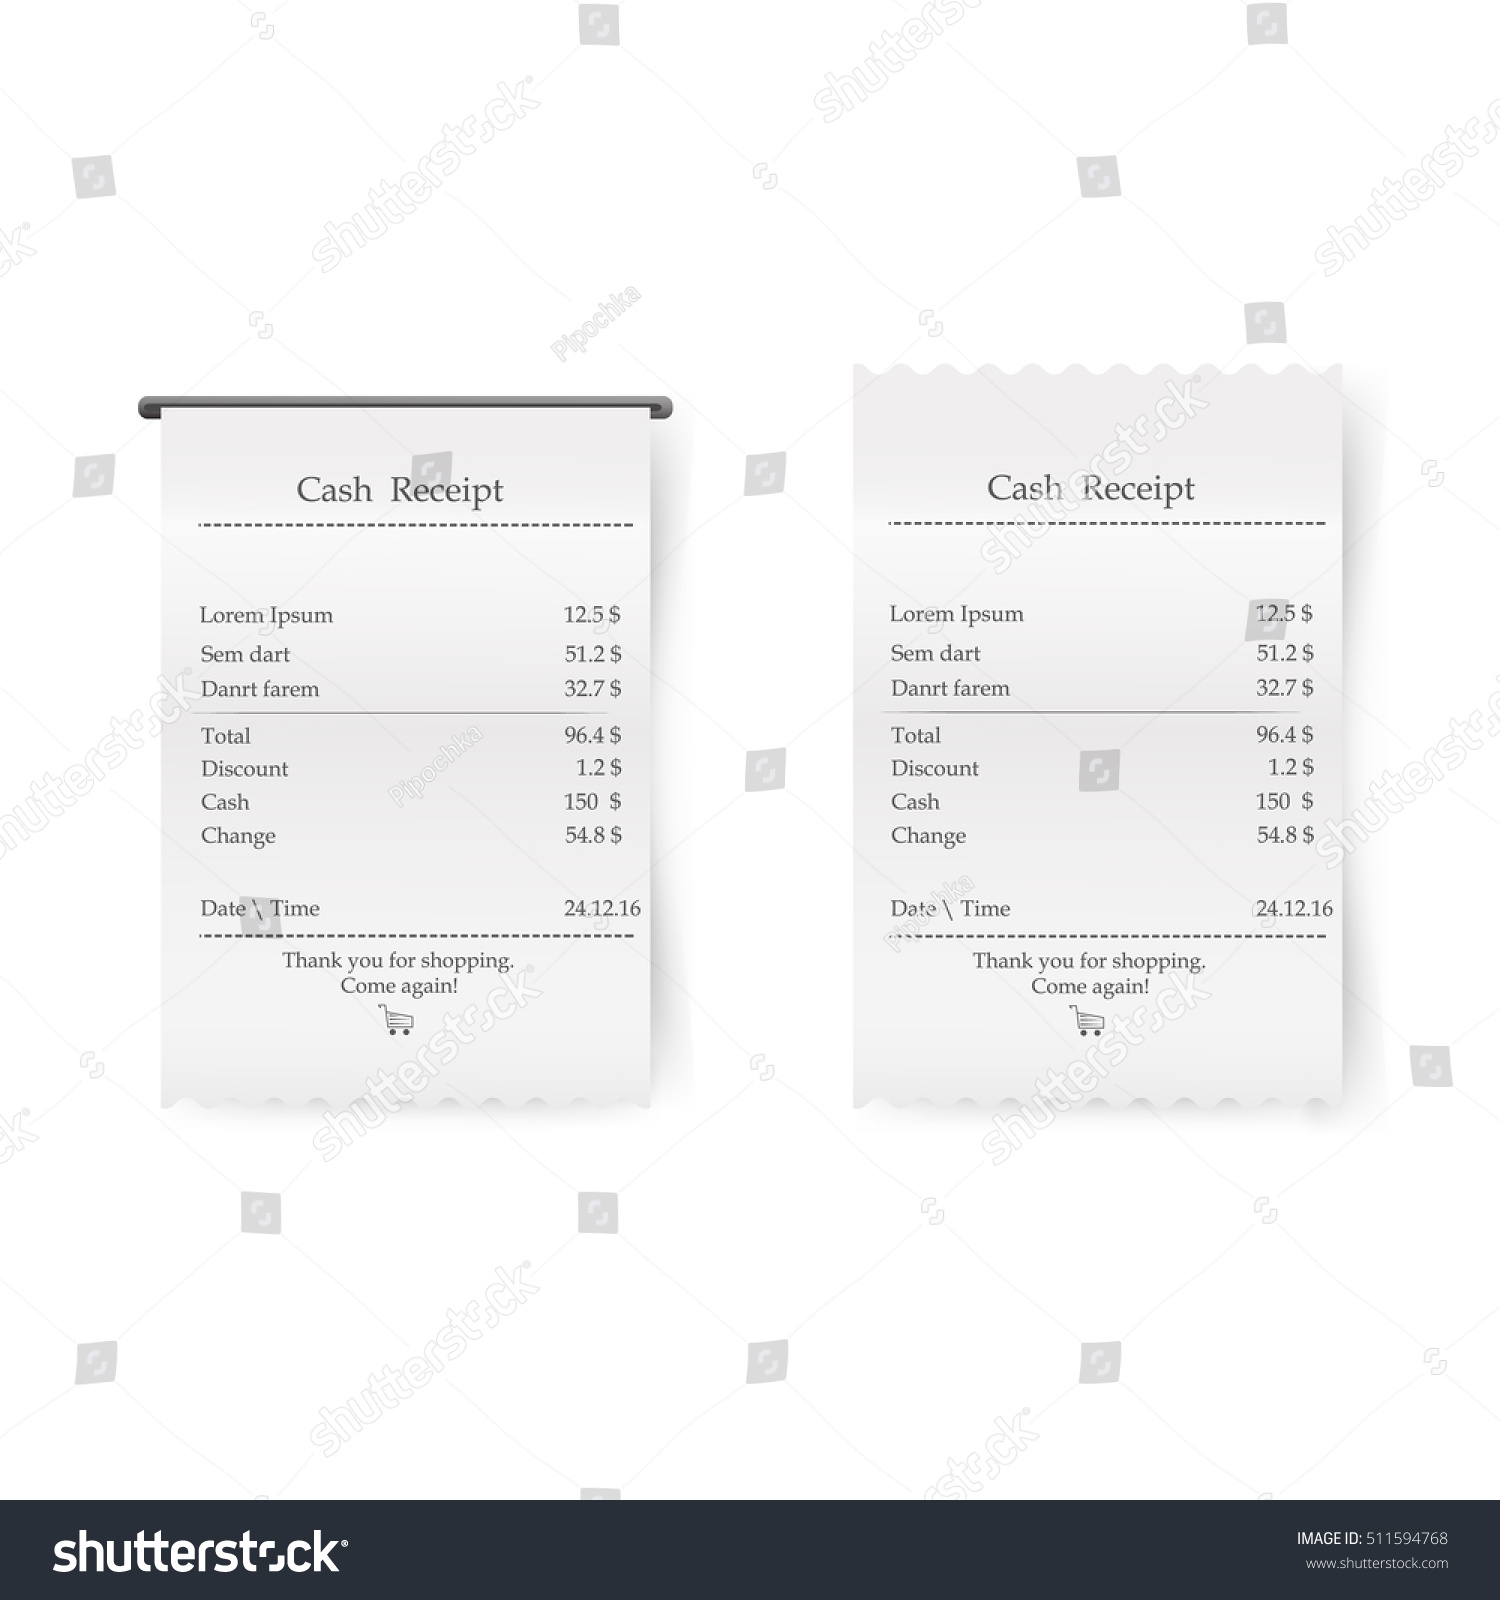 Sales Printed Receipt Vector. Bill Atm Template, Cafe, Shopping Or  Restaurant Paper Financial